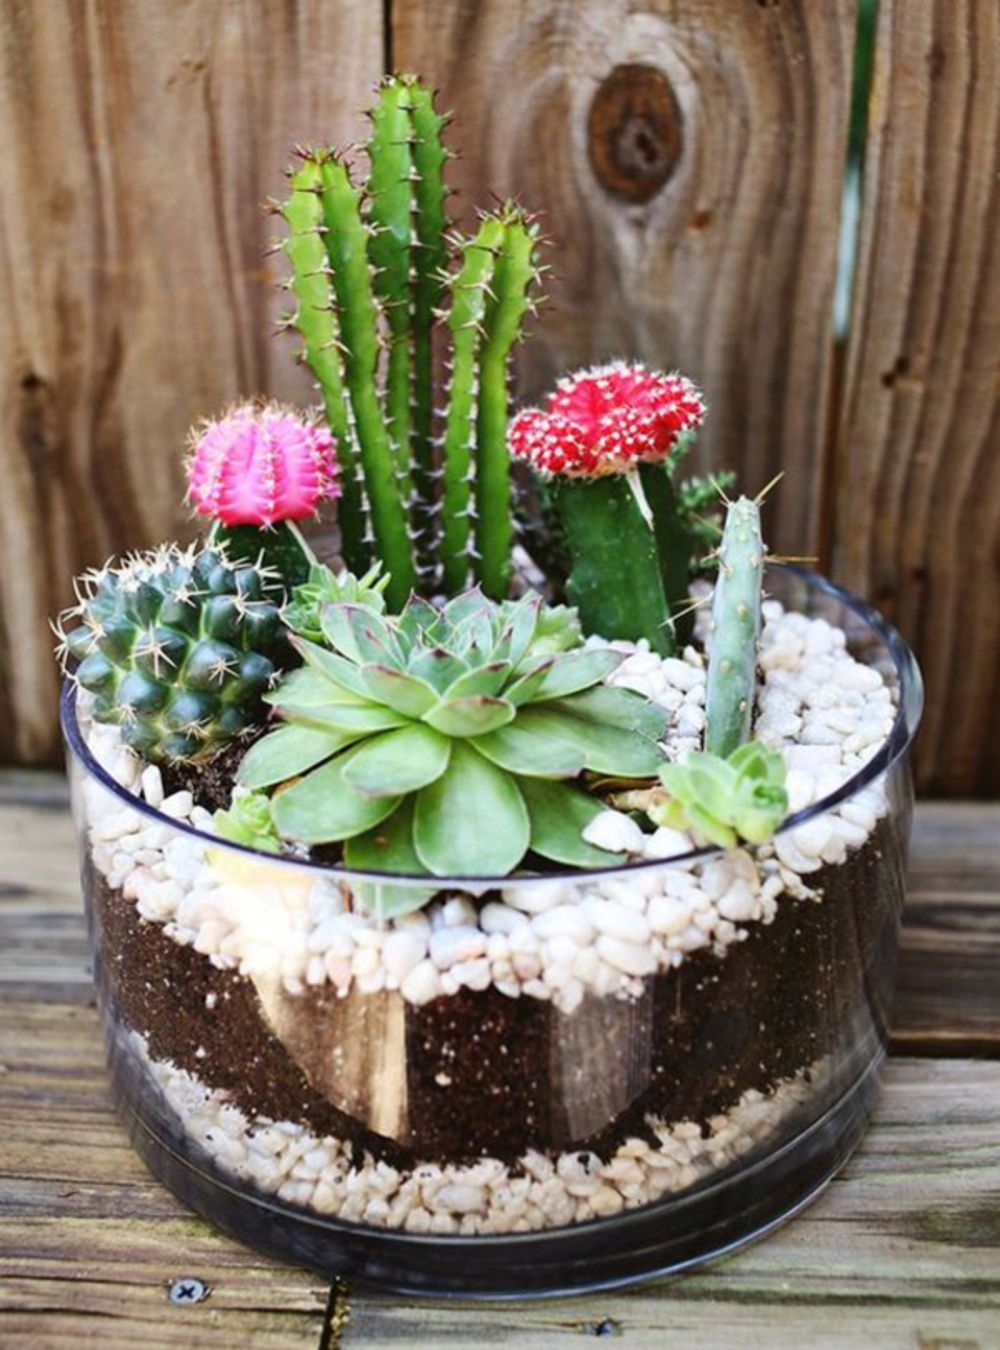 Stunning 30 incredibly amazing diy succulents project ideas https